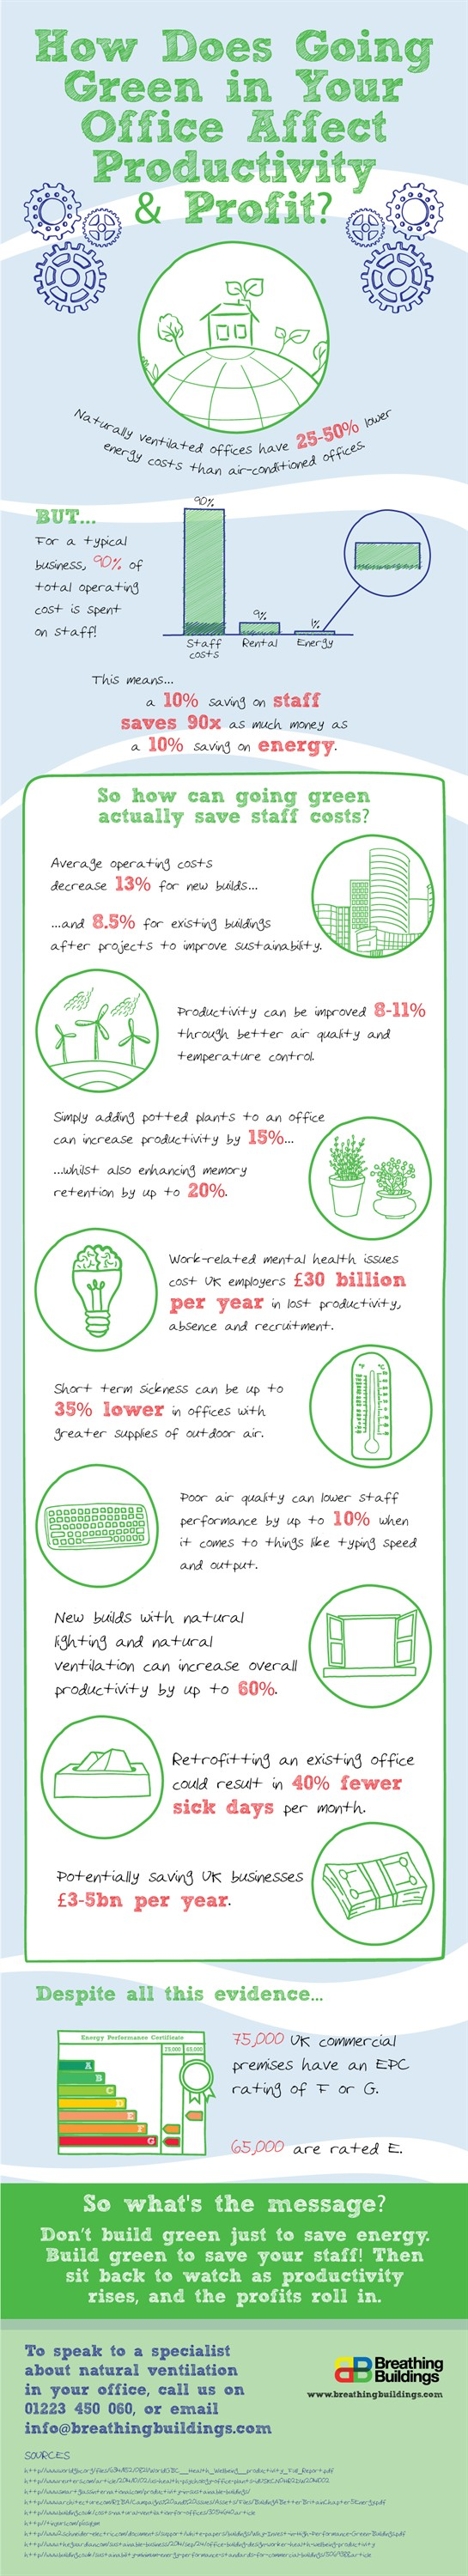 breathing-buildings - how going green in your office can affect productivity and profit_545x3000